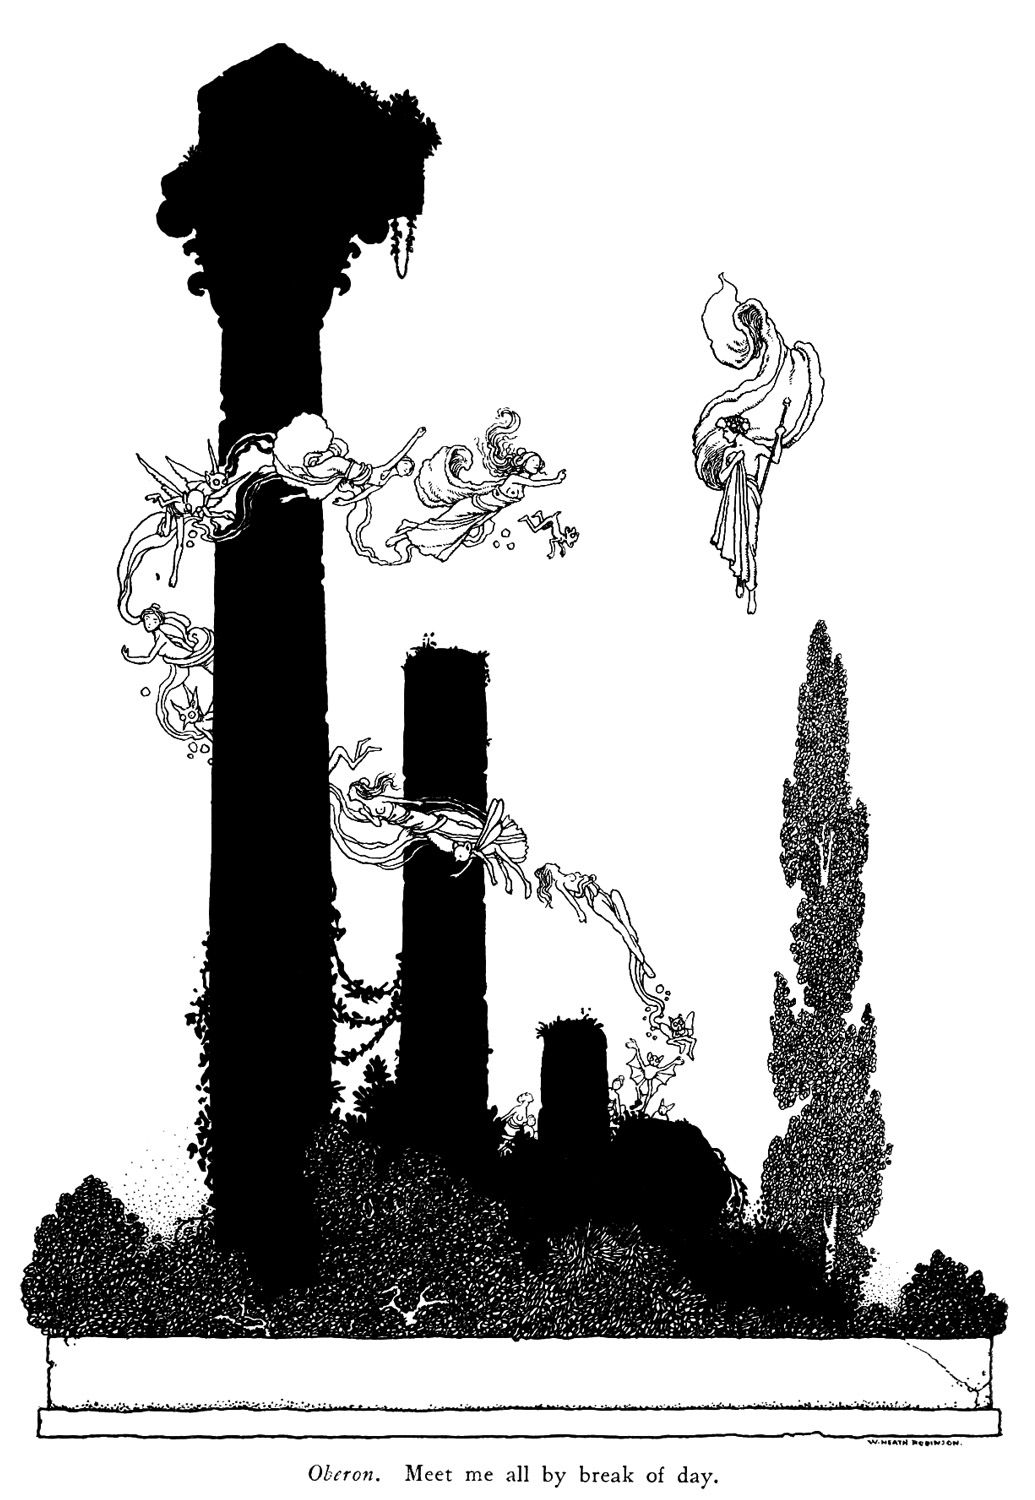 Shakespeare's comedy of a midsummer night's dream, with illustration by W. Heath Robinson. Published 1914 by Constable & Co